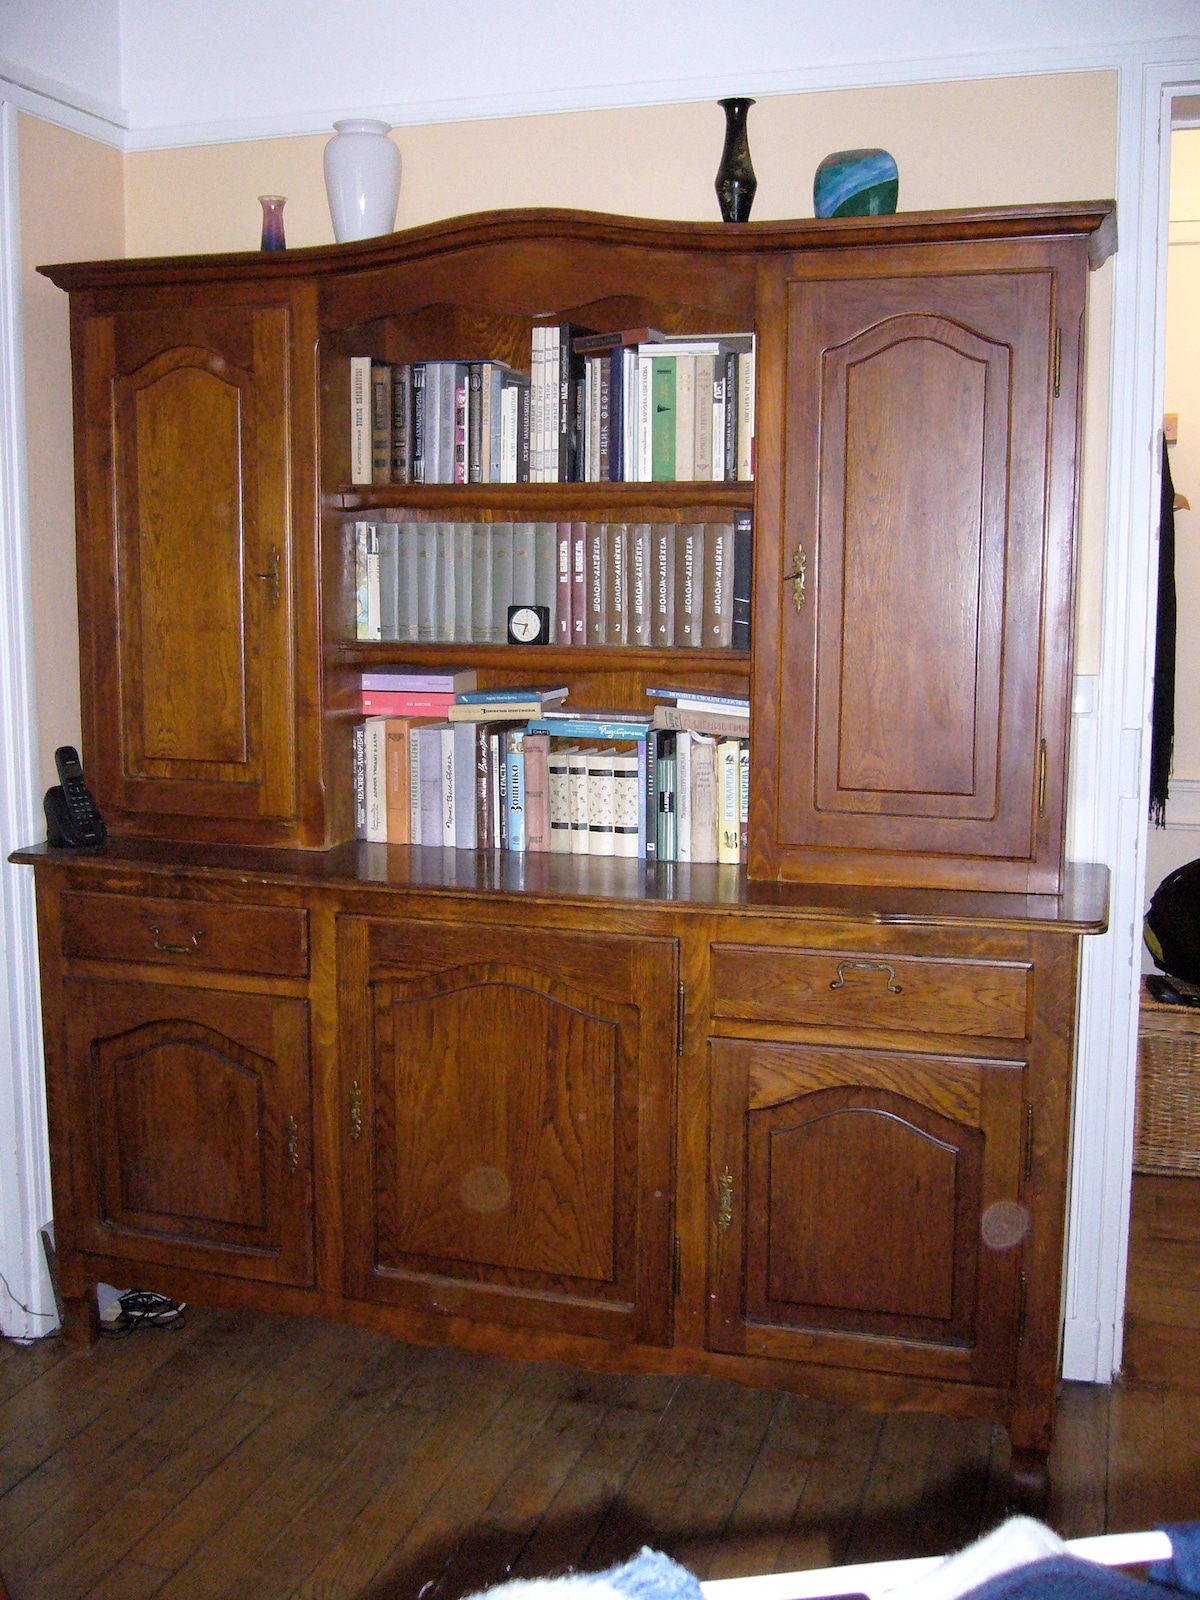 An old library-cupboard